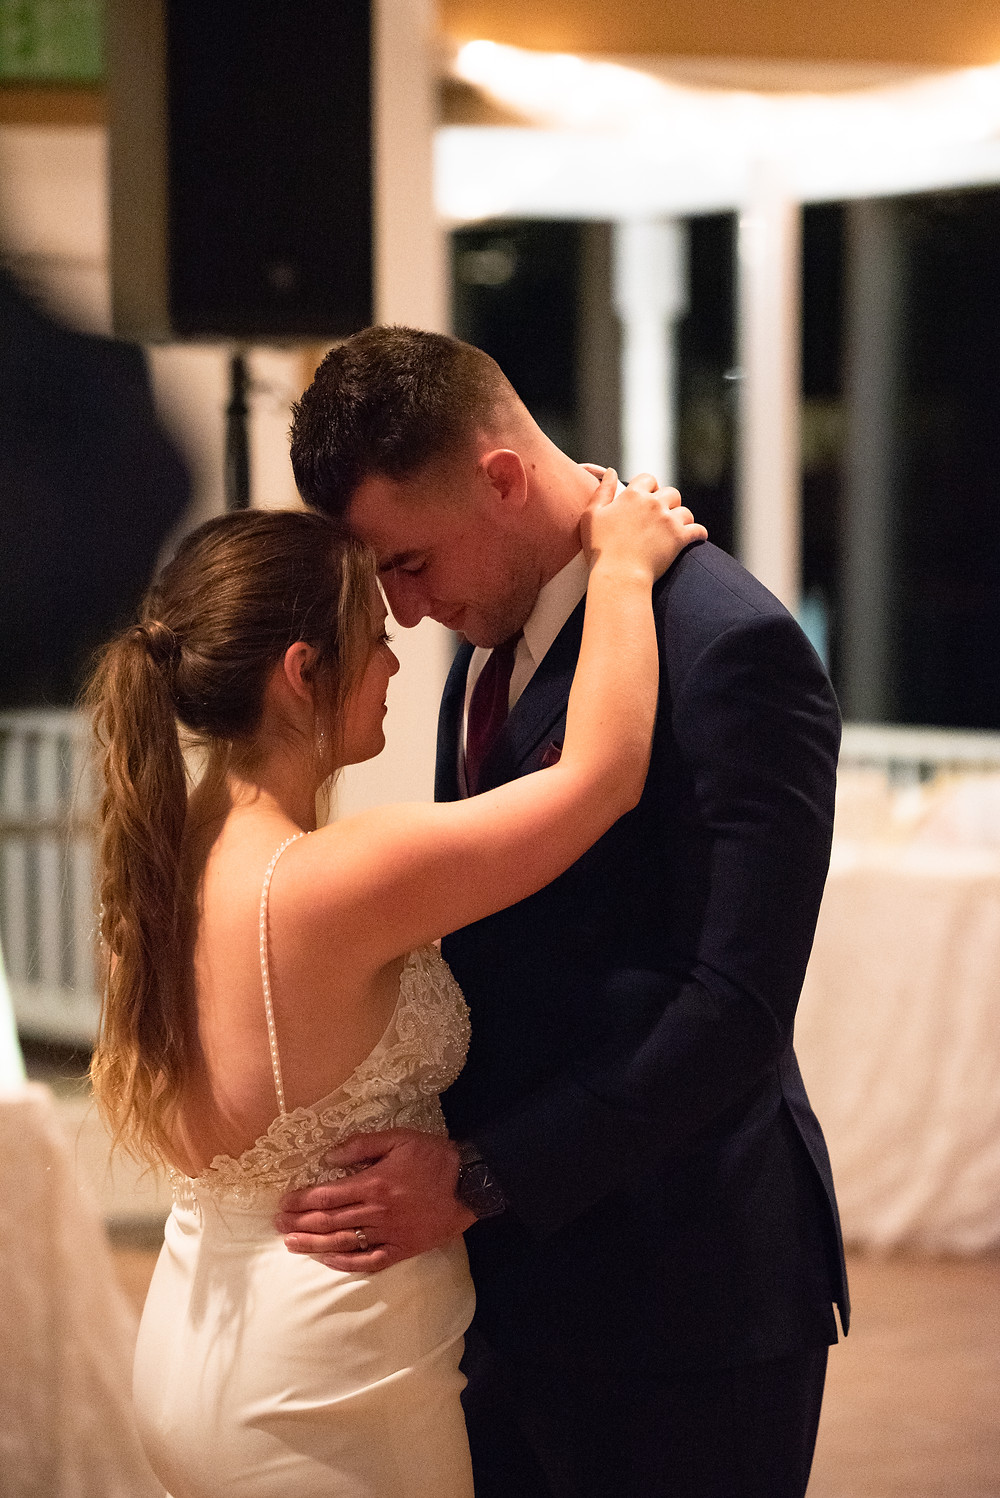 First dance as husband and wife during a wedding reception at Morningside Inn in Frederick, Maryland